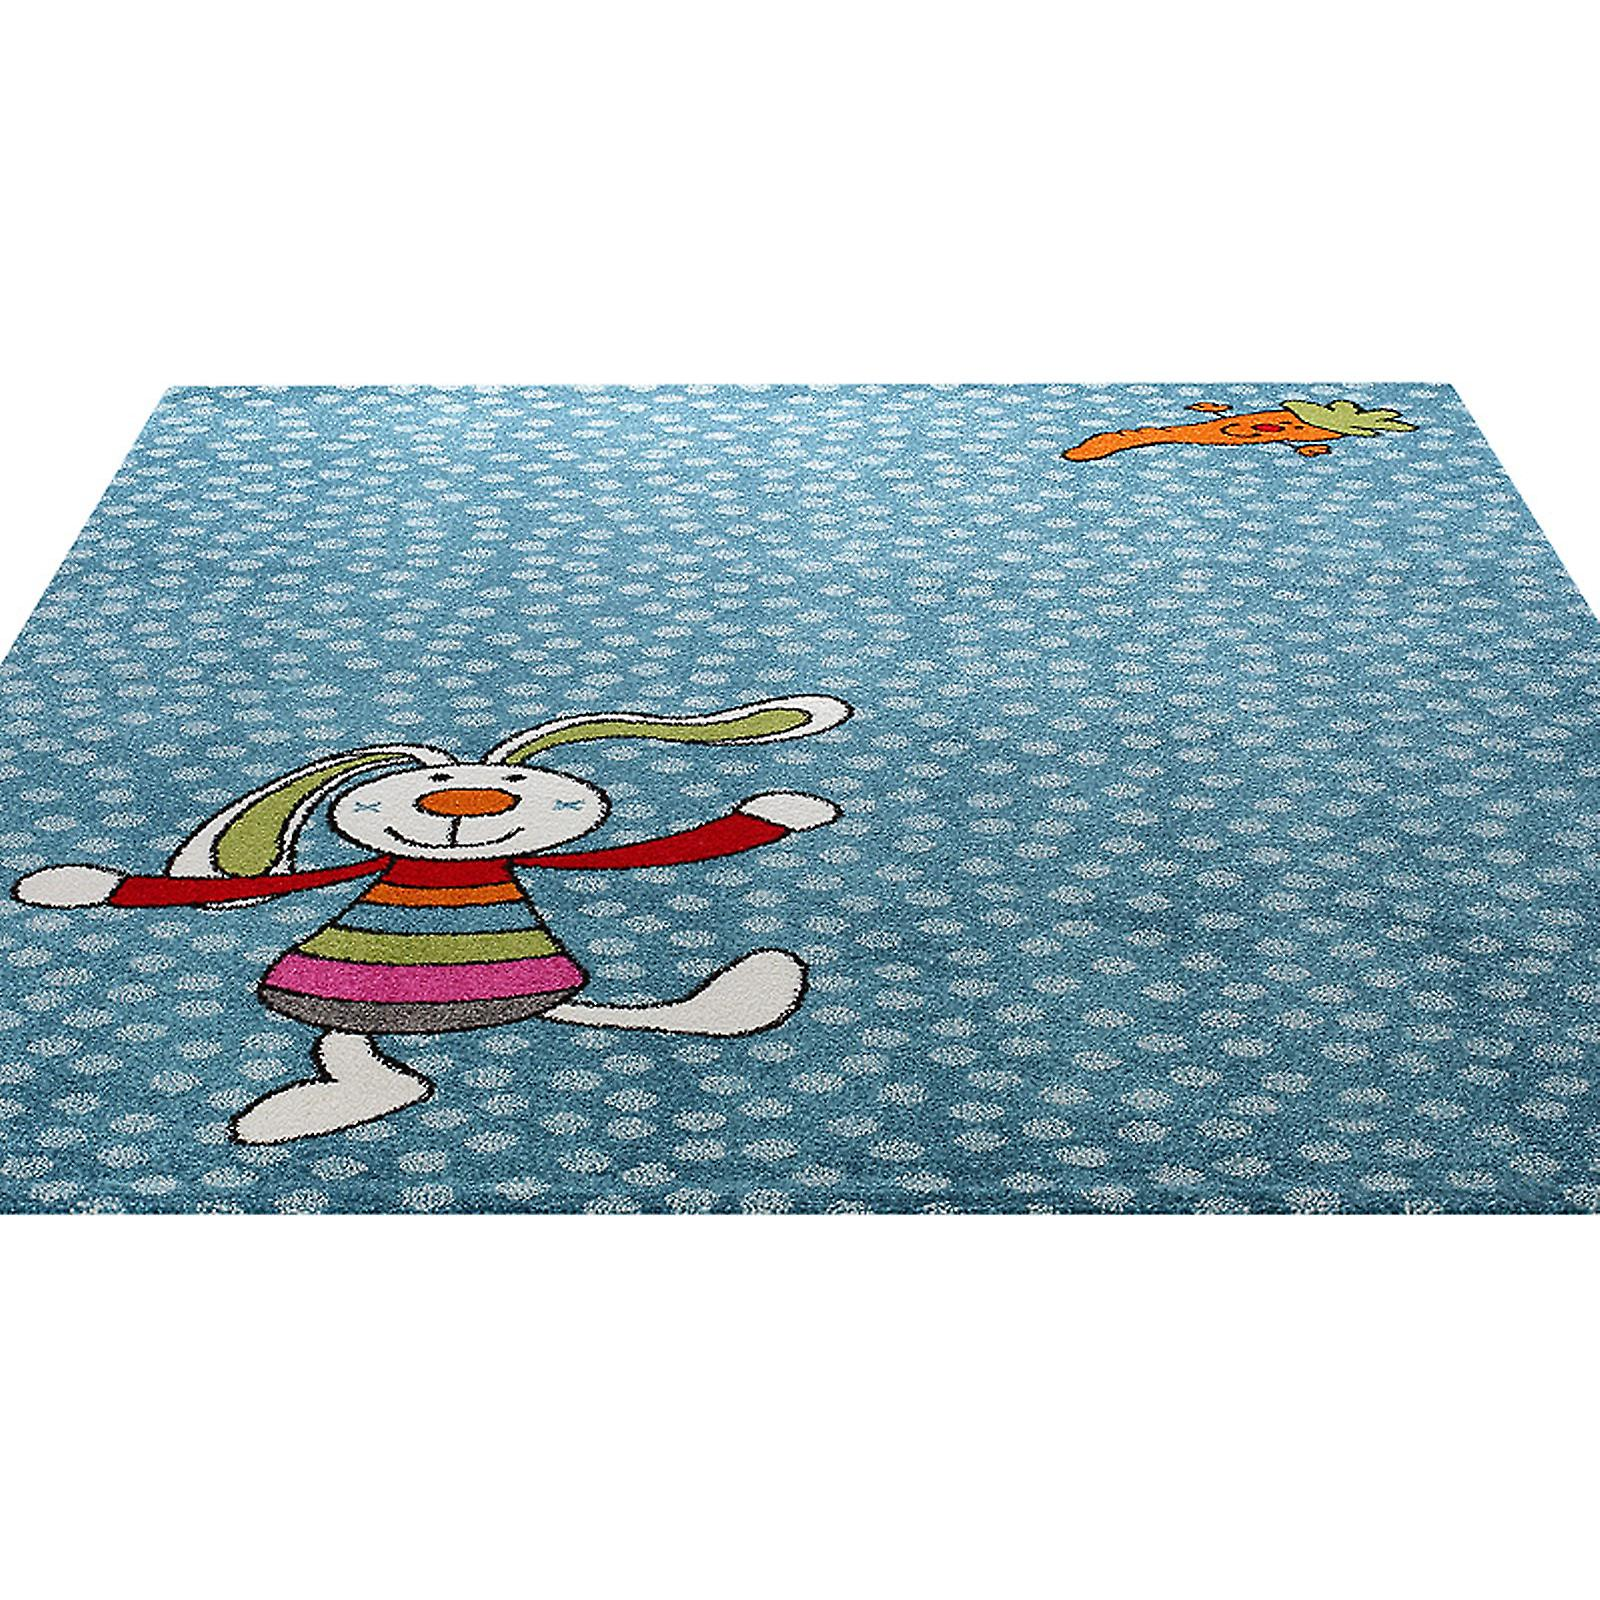 Rainbow Rabbit Rug In Blue 0523 01